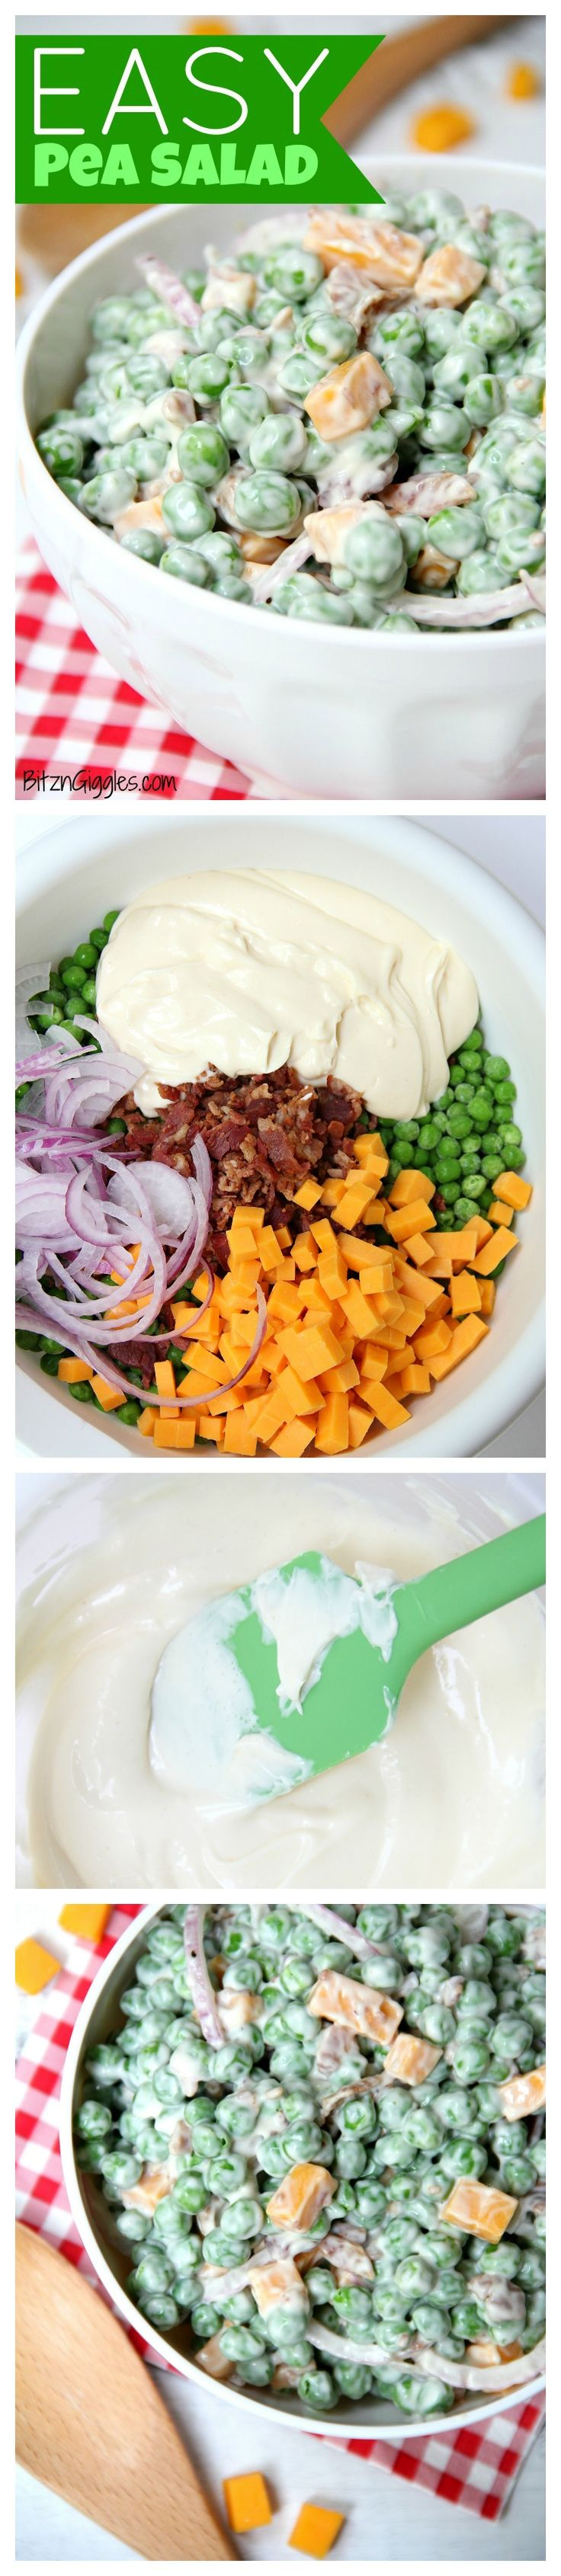 Easy Pea Salad - A summer salad perfect for potlucks and gatherings. Crisp green peas float alongside bacon, cheddar cheese and thinly sliced red onion in a sweet and creamy dressing.(Favorite Pins Salad Dressings)